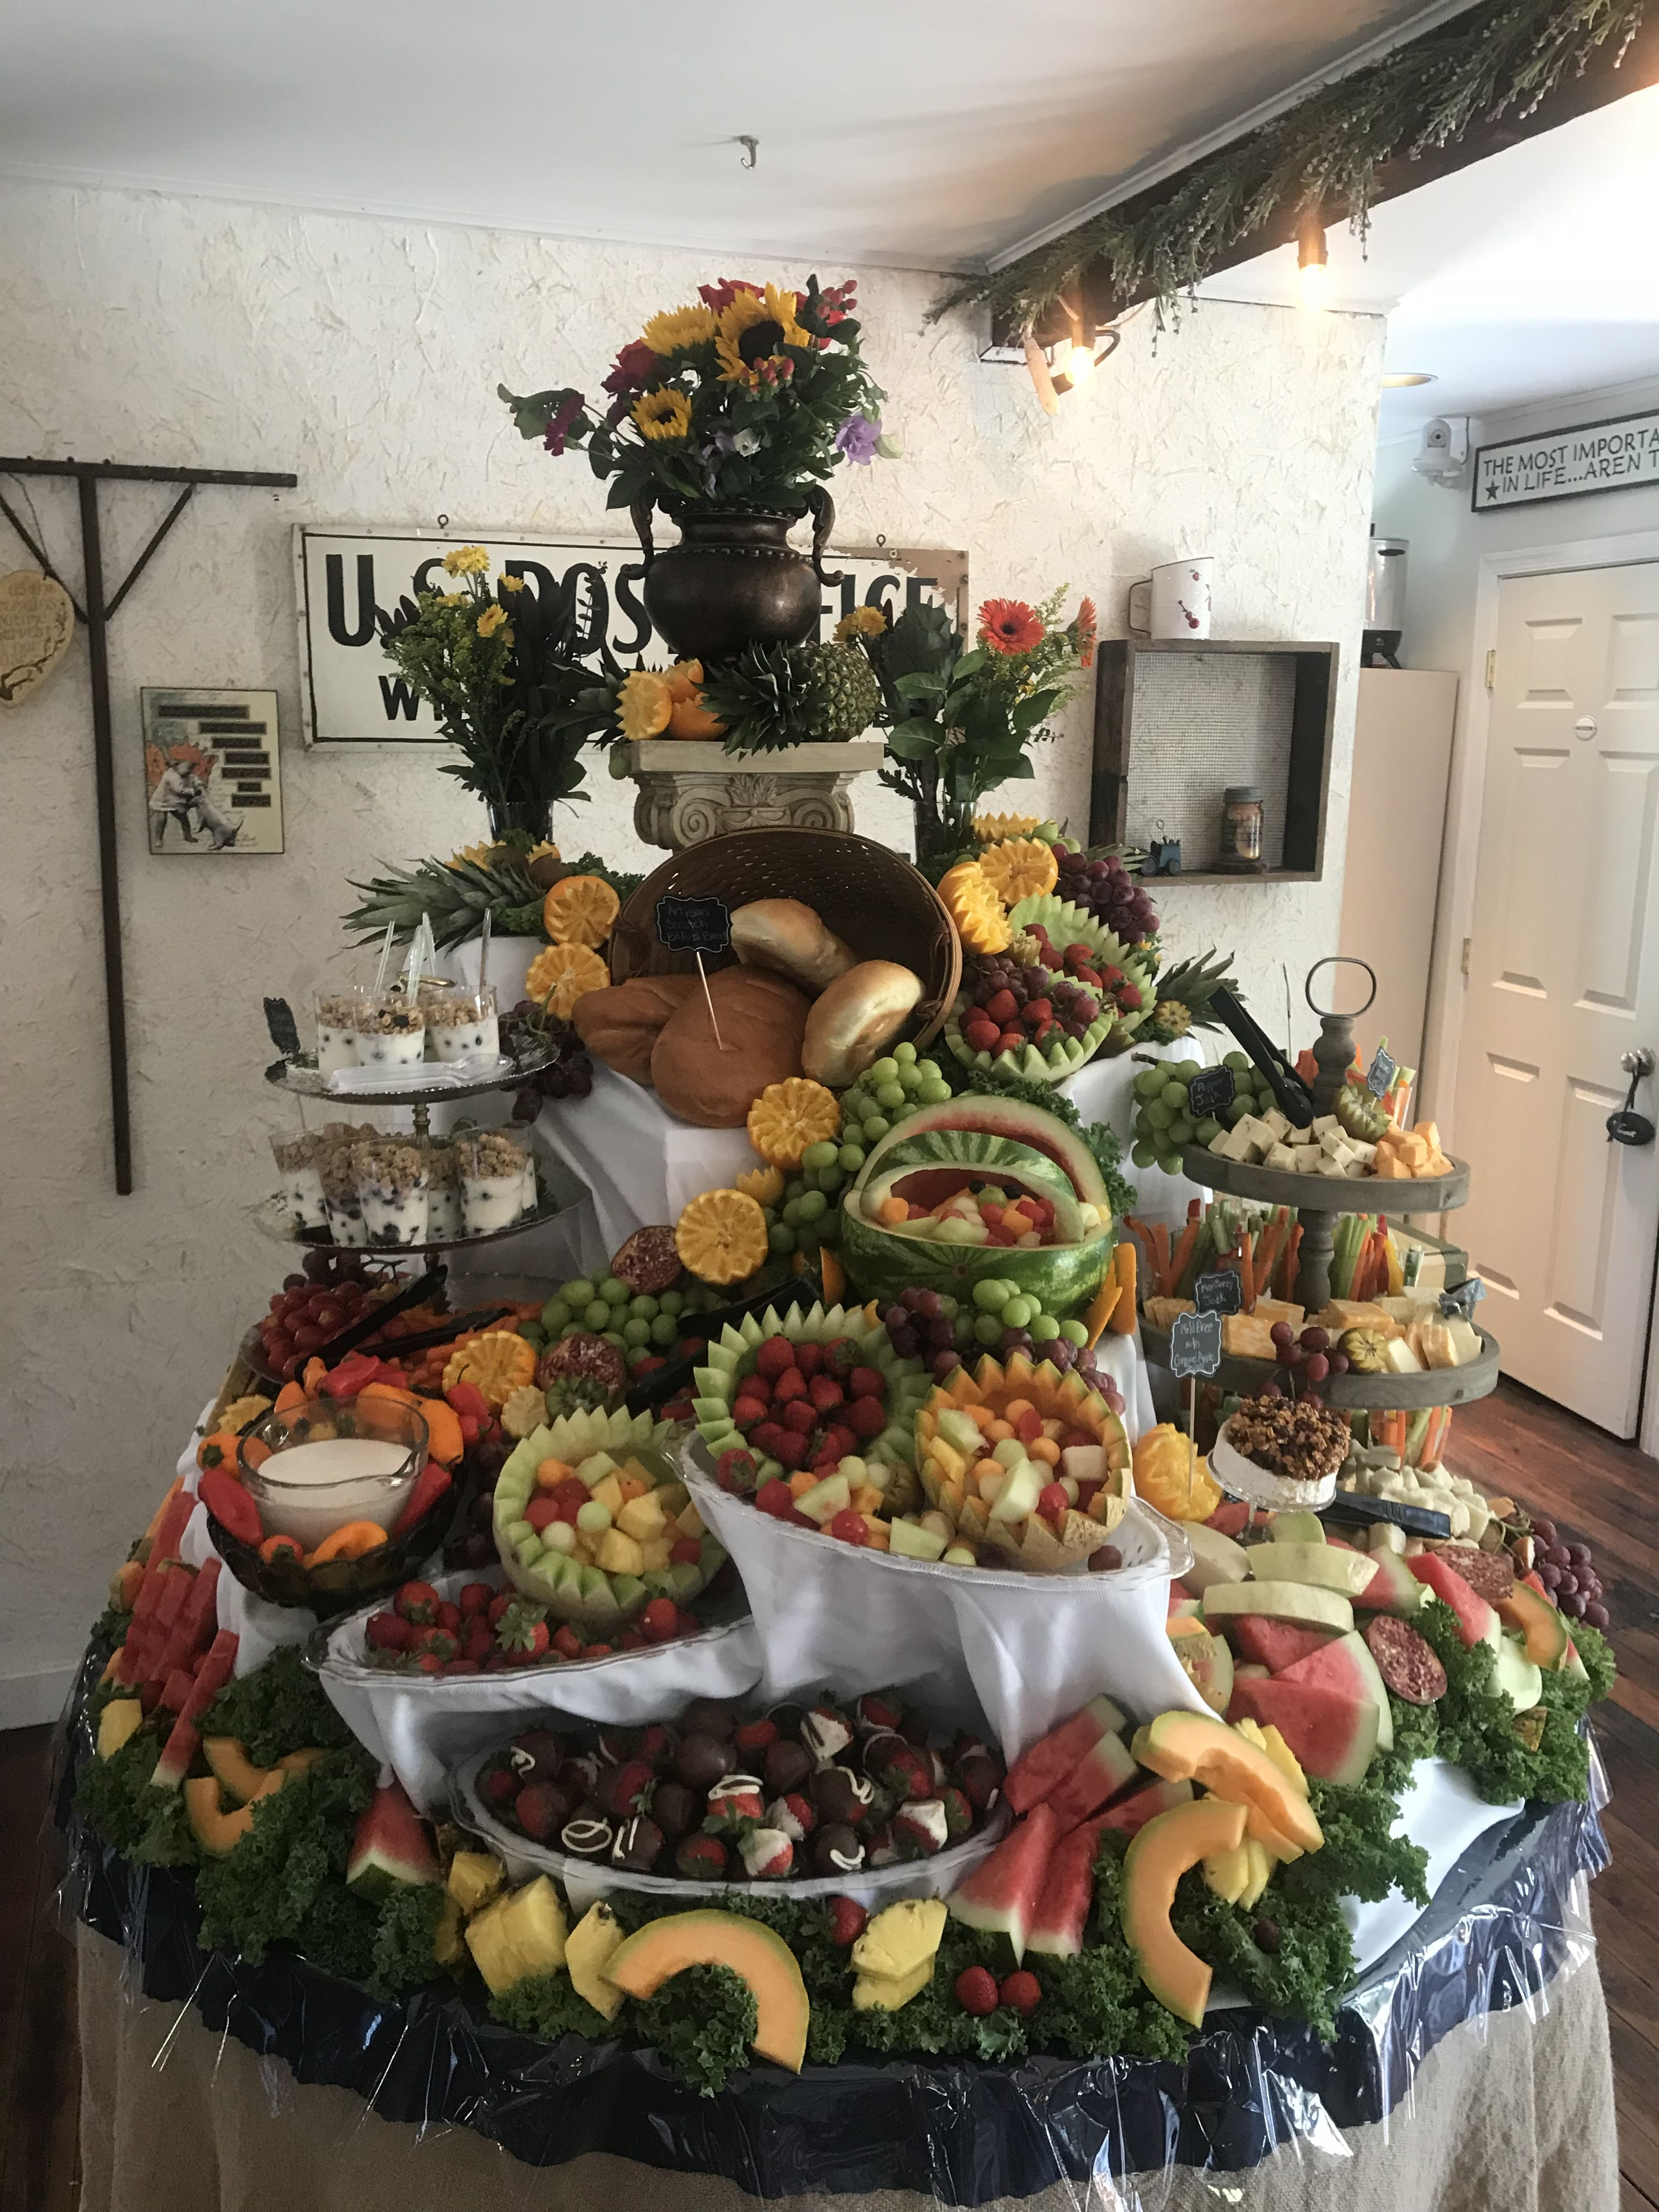 Pin by Daniel Whittington on Catering Food displays